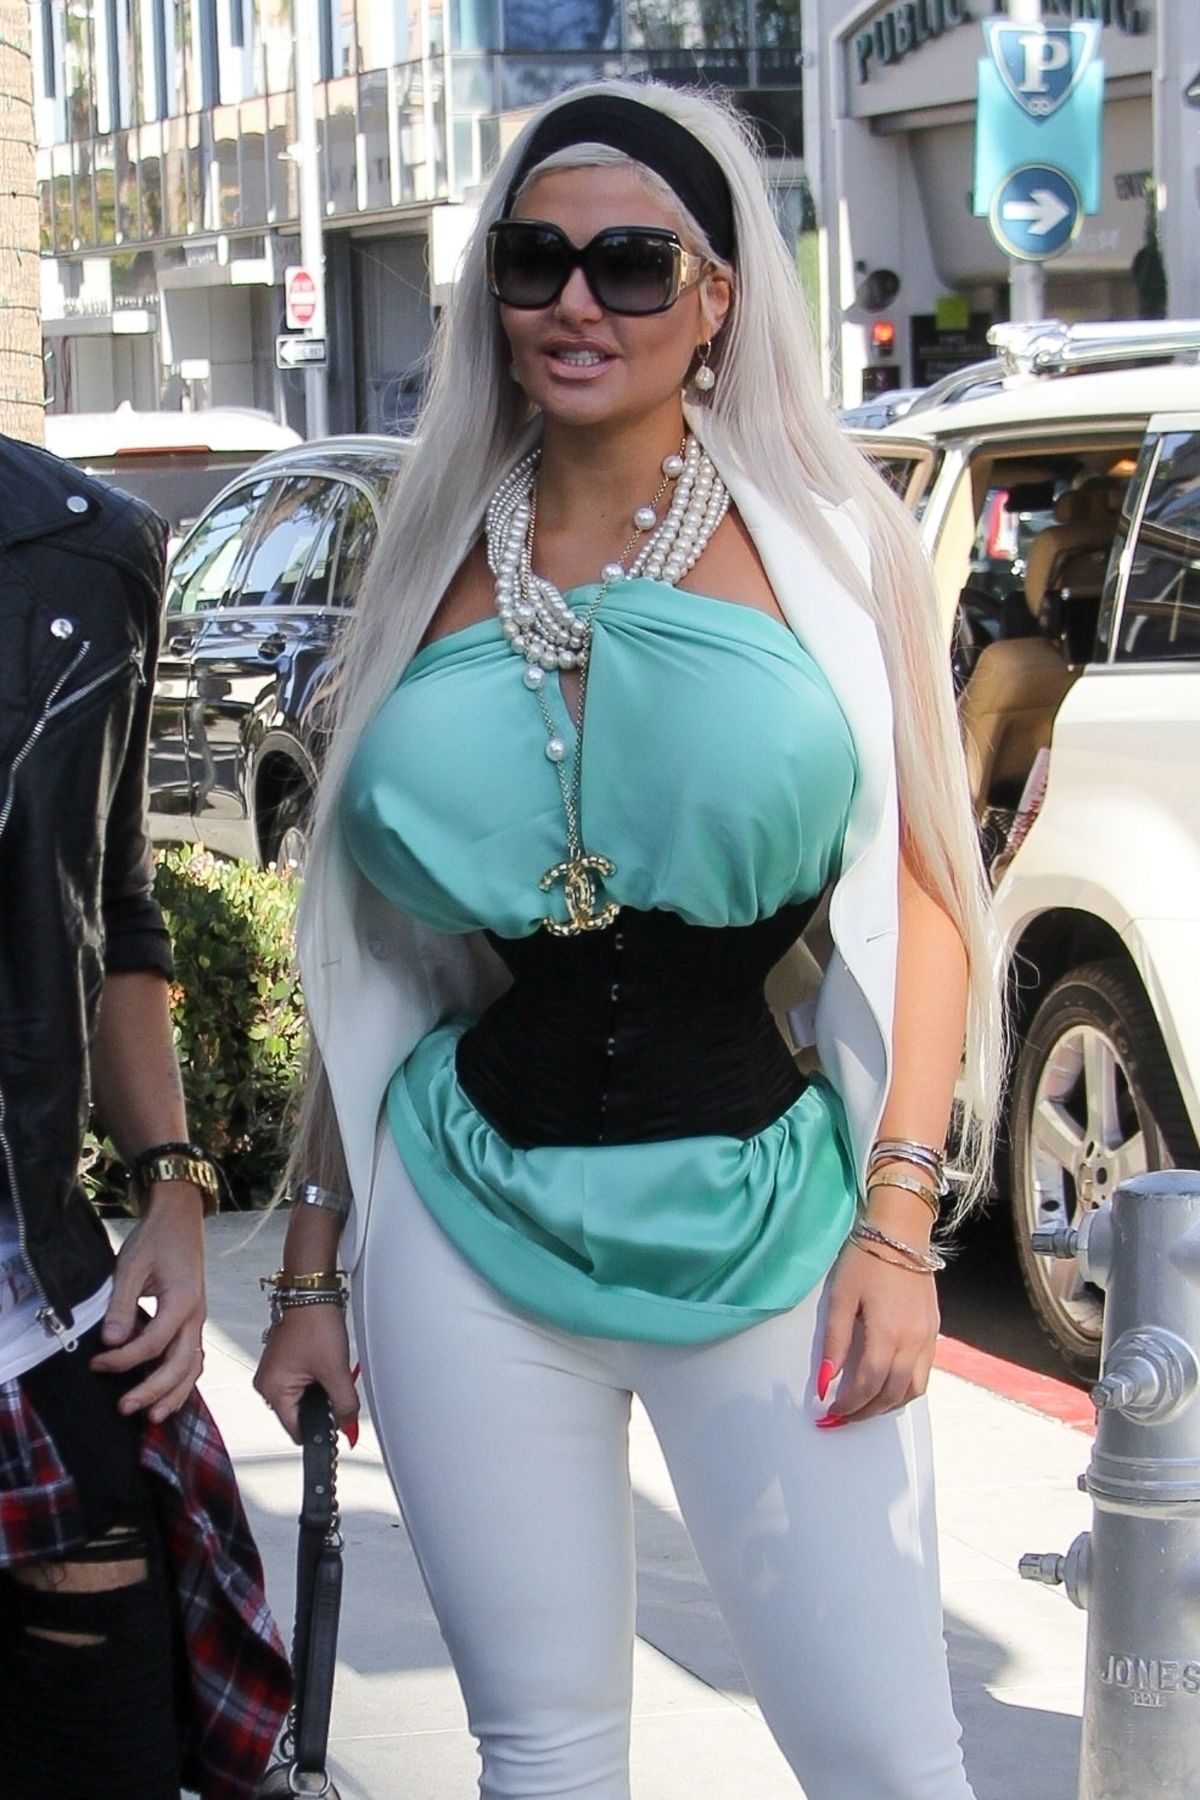 Sophia Vegas Wollersheim Out On Rodeo Drive In Beverly